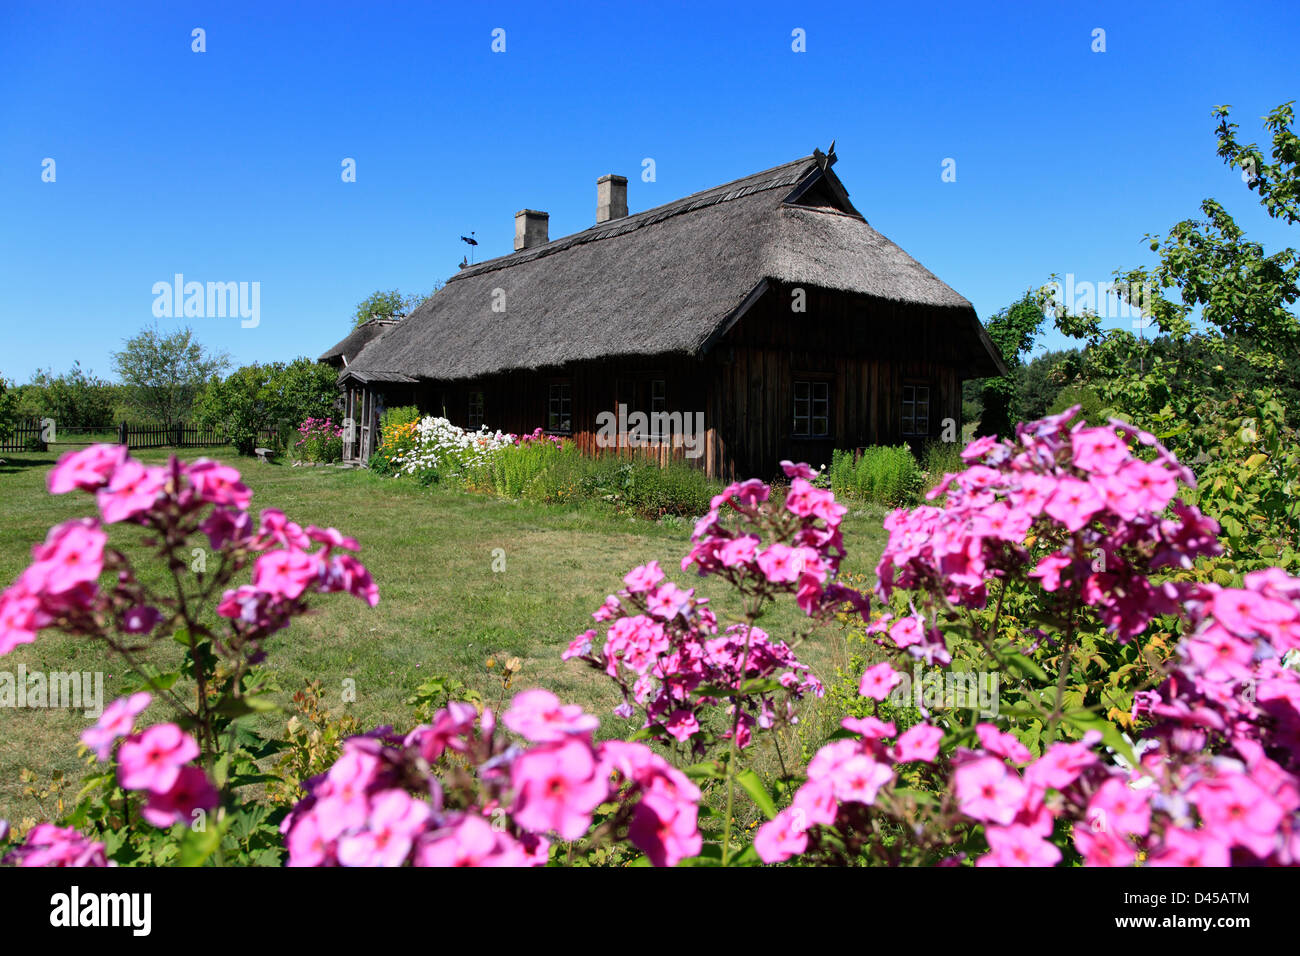 Old fisher-house at Latvian Ethnographic Open-air Museum, near Riga, Latvia - Stock Image